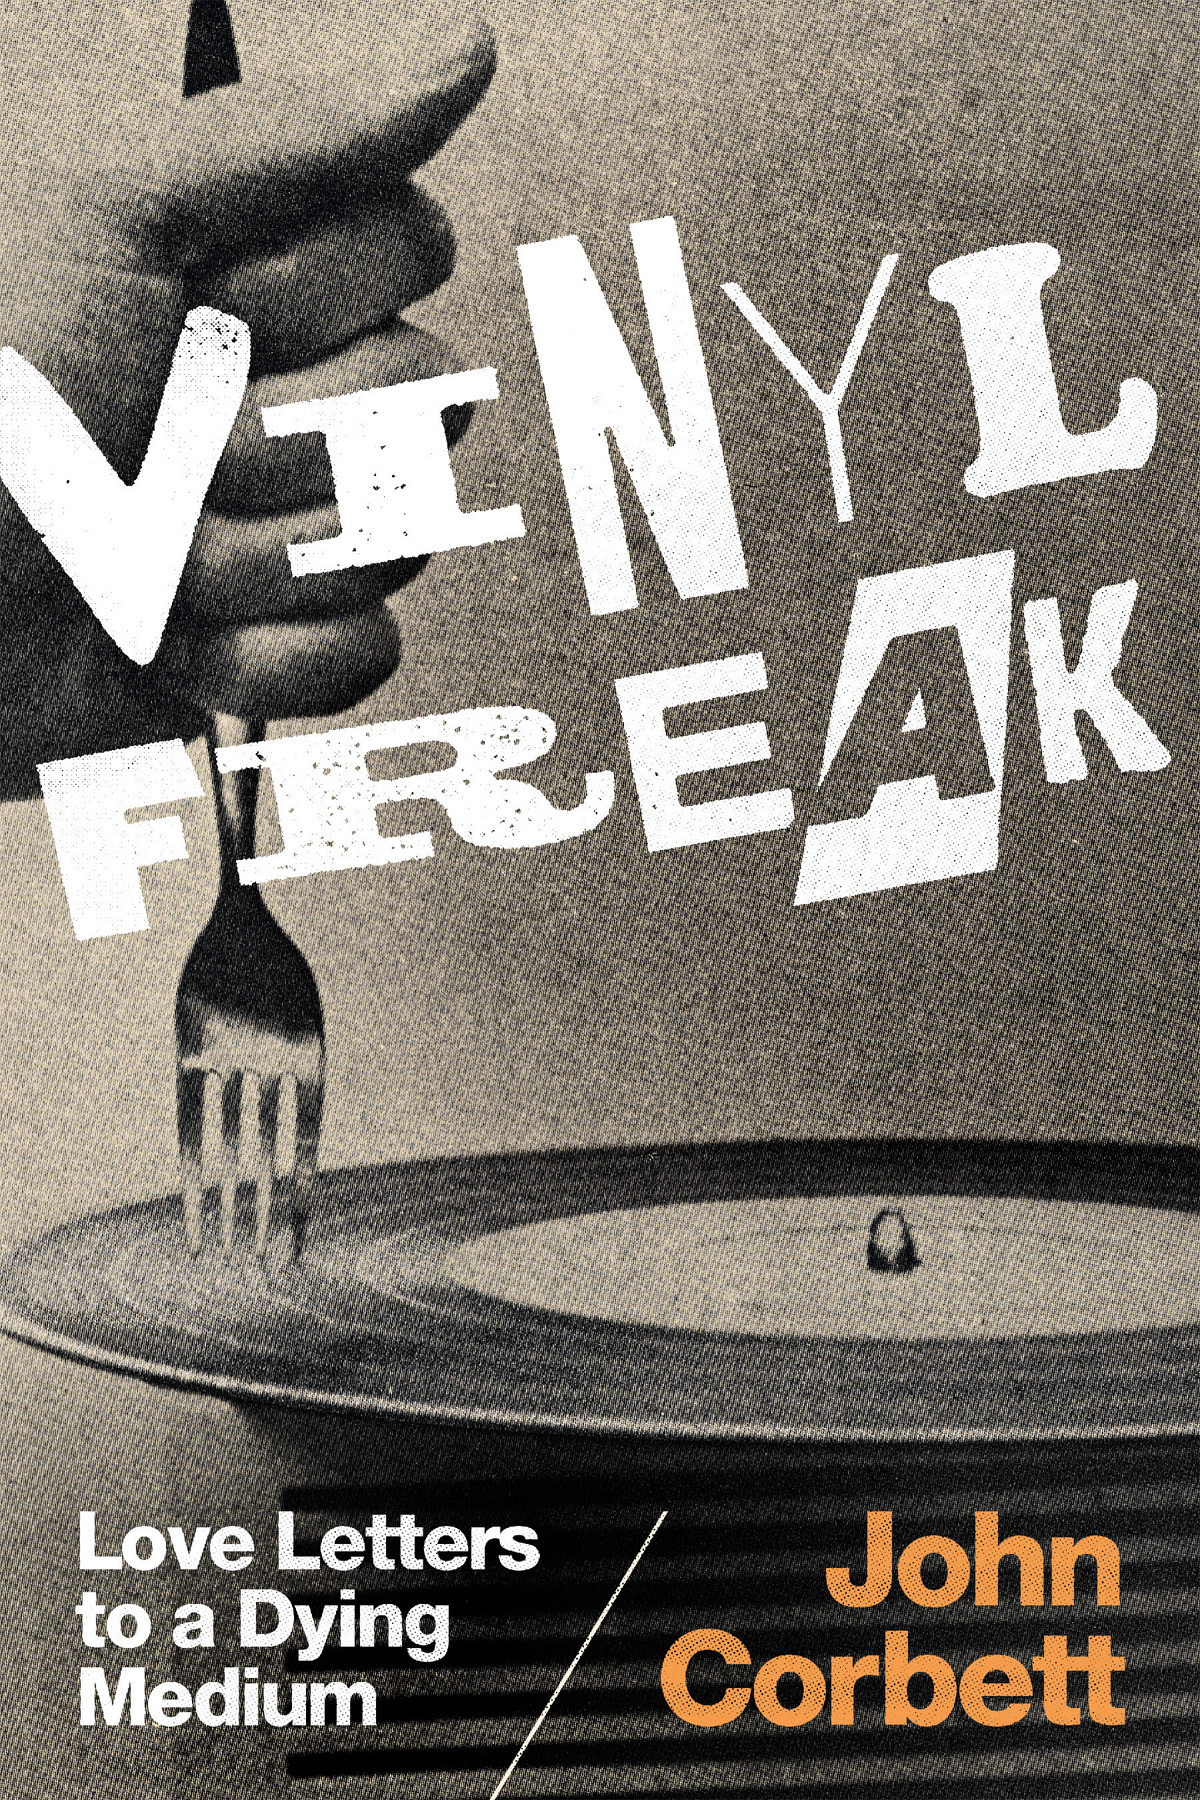 Vinyl Freak Love Letters to a Dying Medium